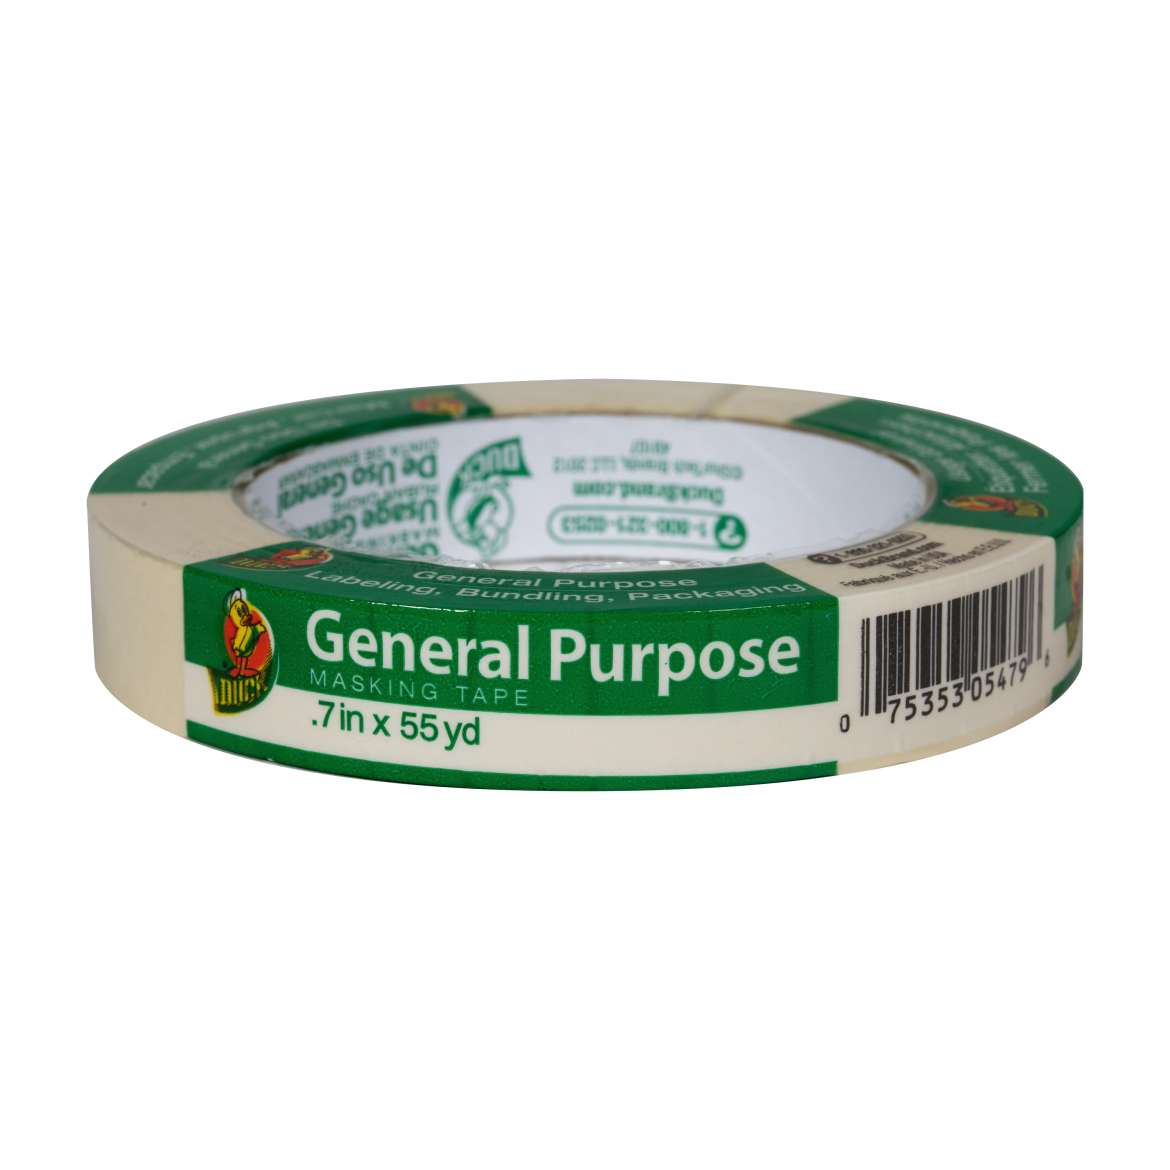 Duck® Brand General Purpose Masking Tape - Beige, .7 in. x 55 yd. Image